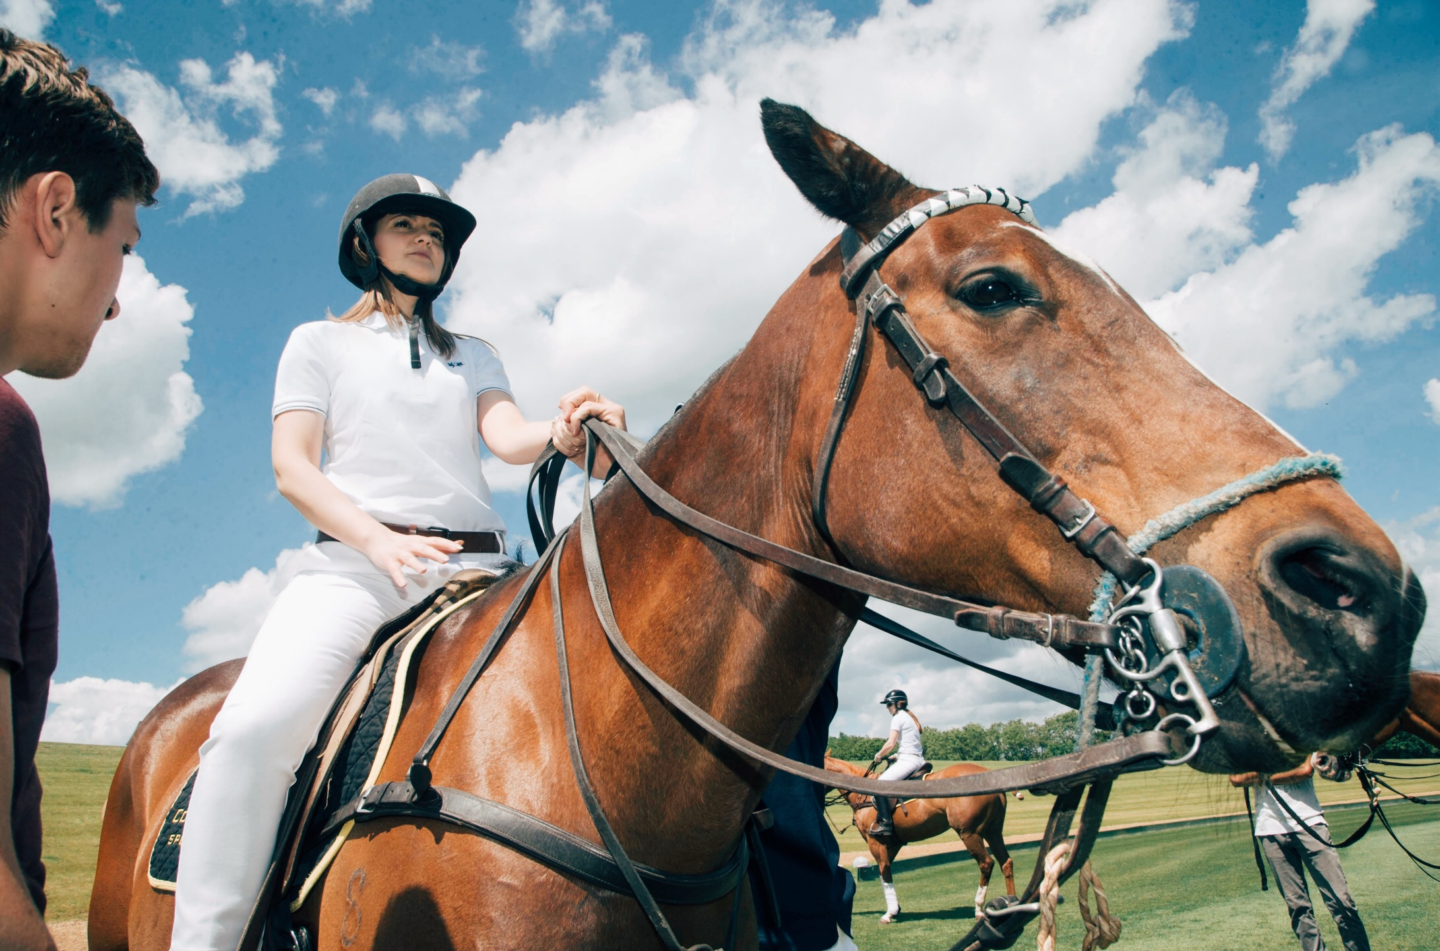 Polo masterclass with Maserati & La Martina